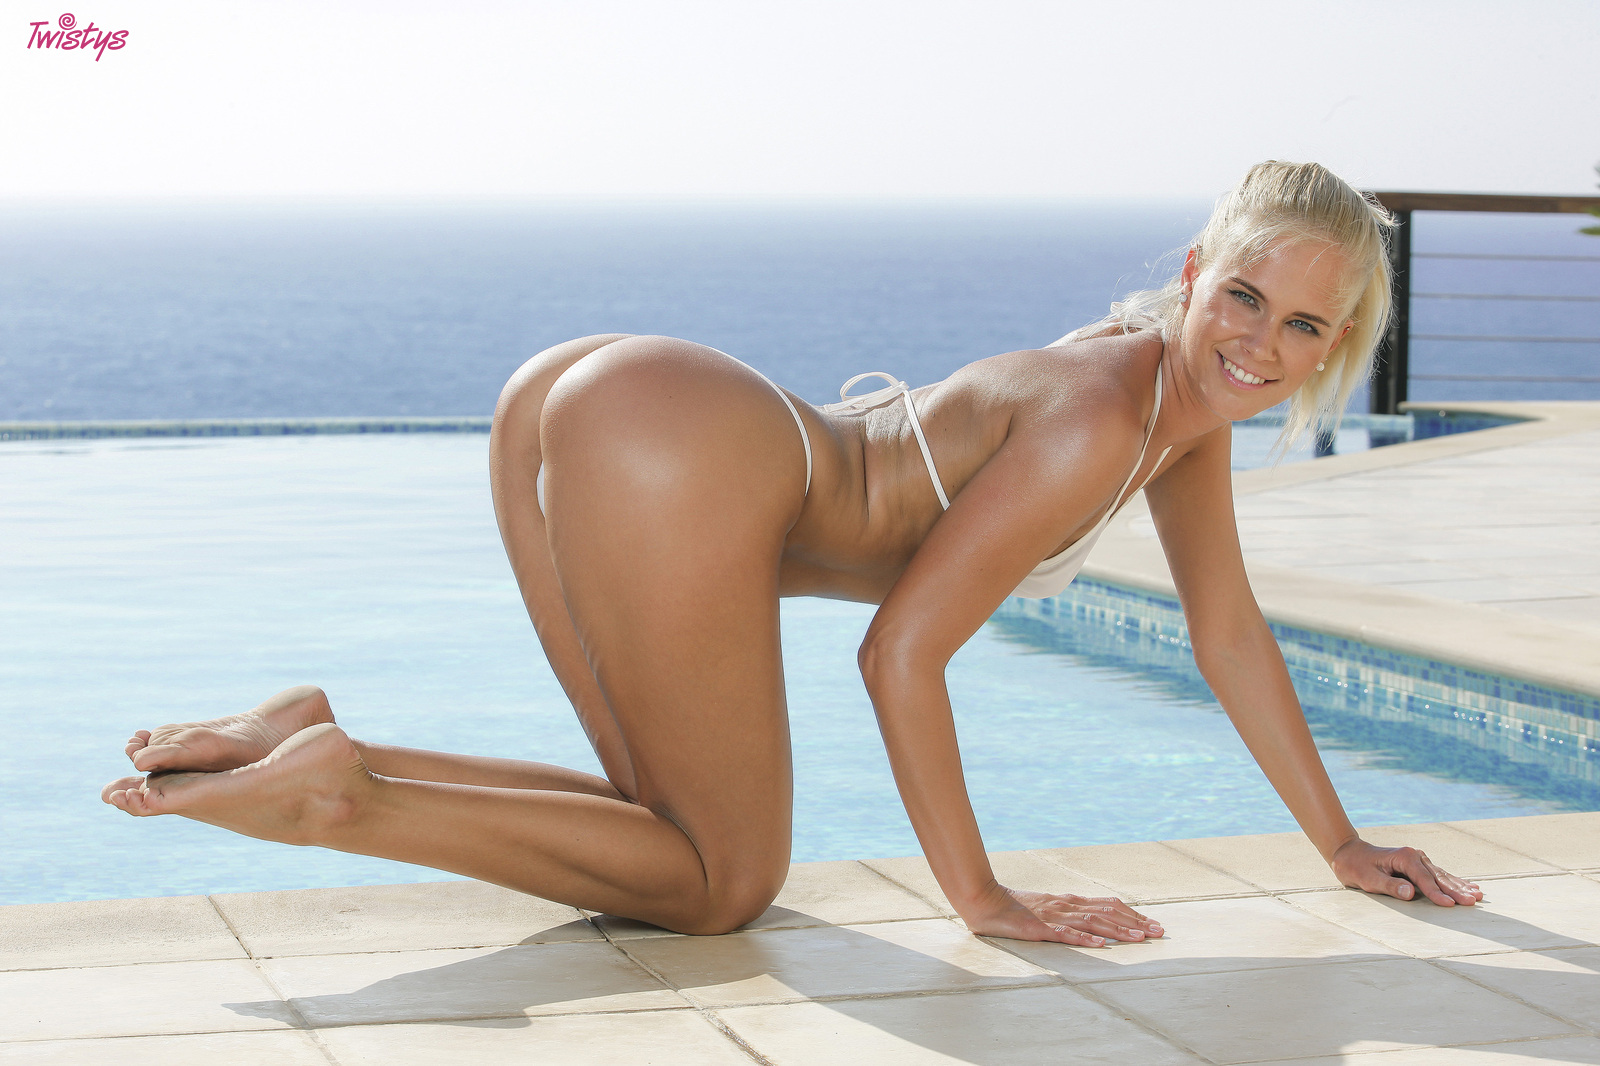 Slippery When Wet.. featuring Tracy Gold | Twistys.com